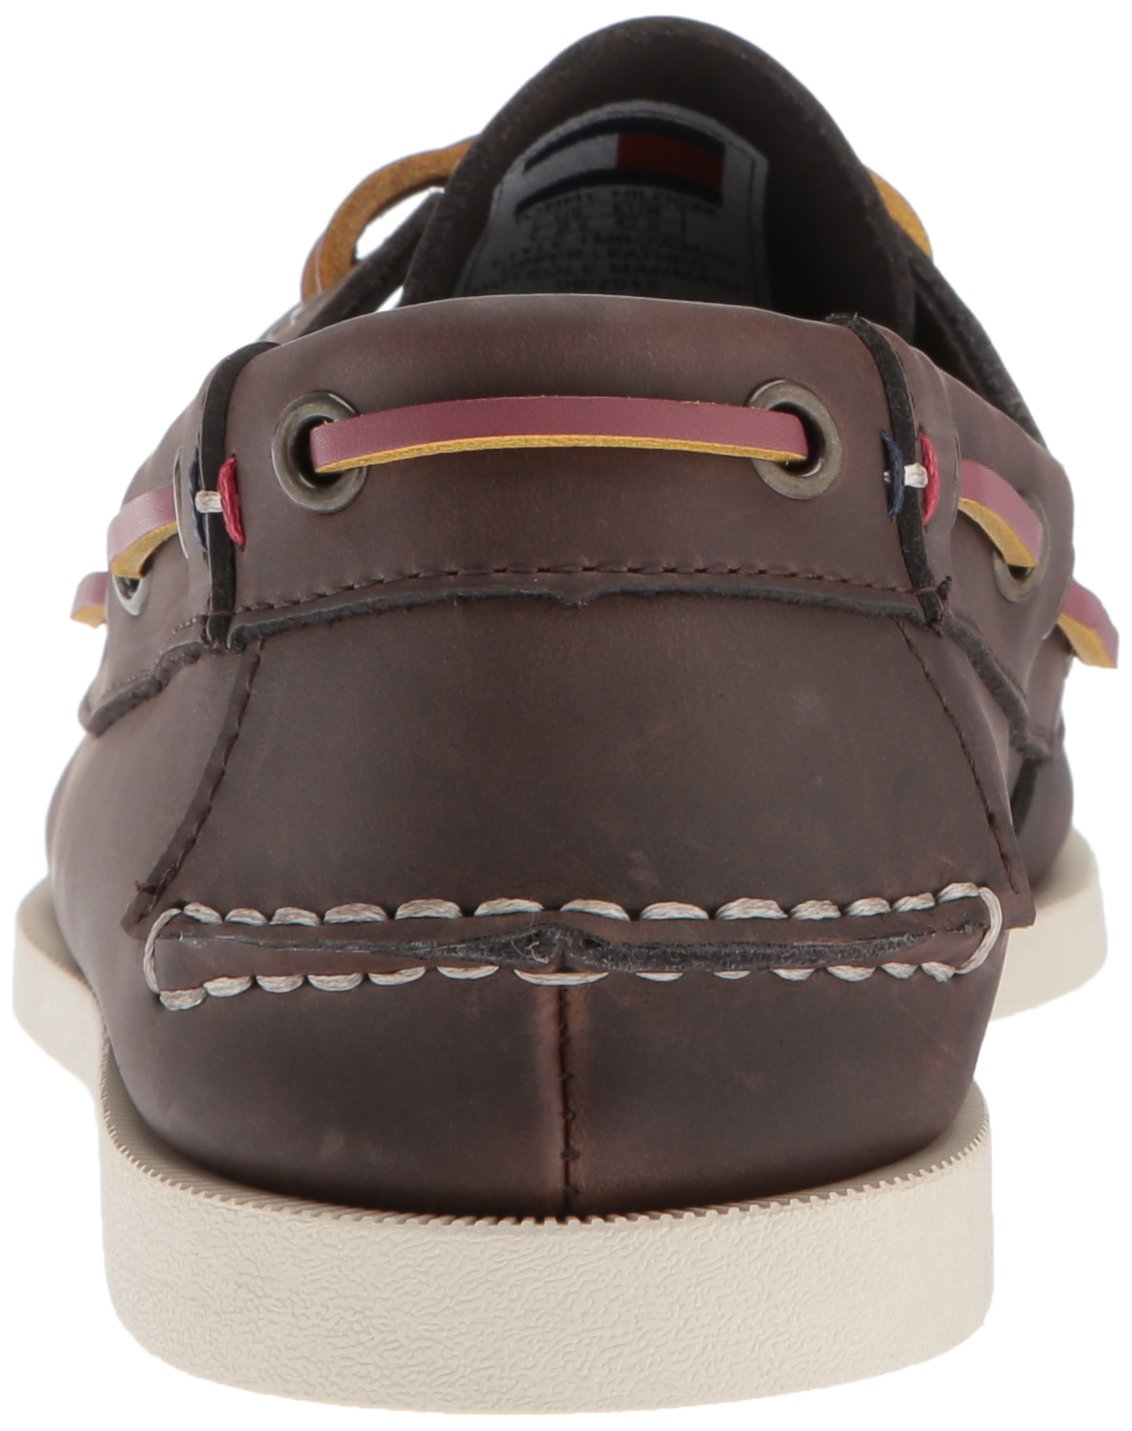 Tommy Hilfiger Men's Bowman Boat shoe,Coffee Bean,8.5 M US by Tommy Hilfiger (Image #2)